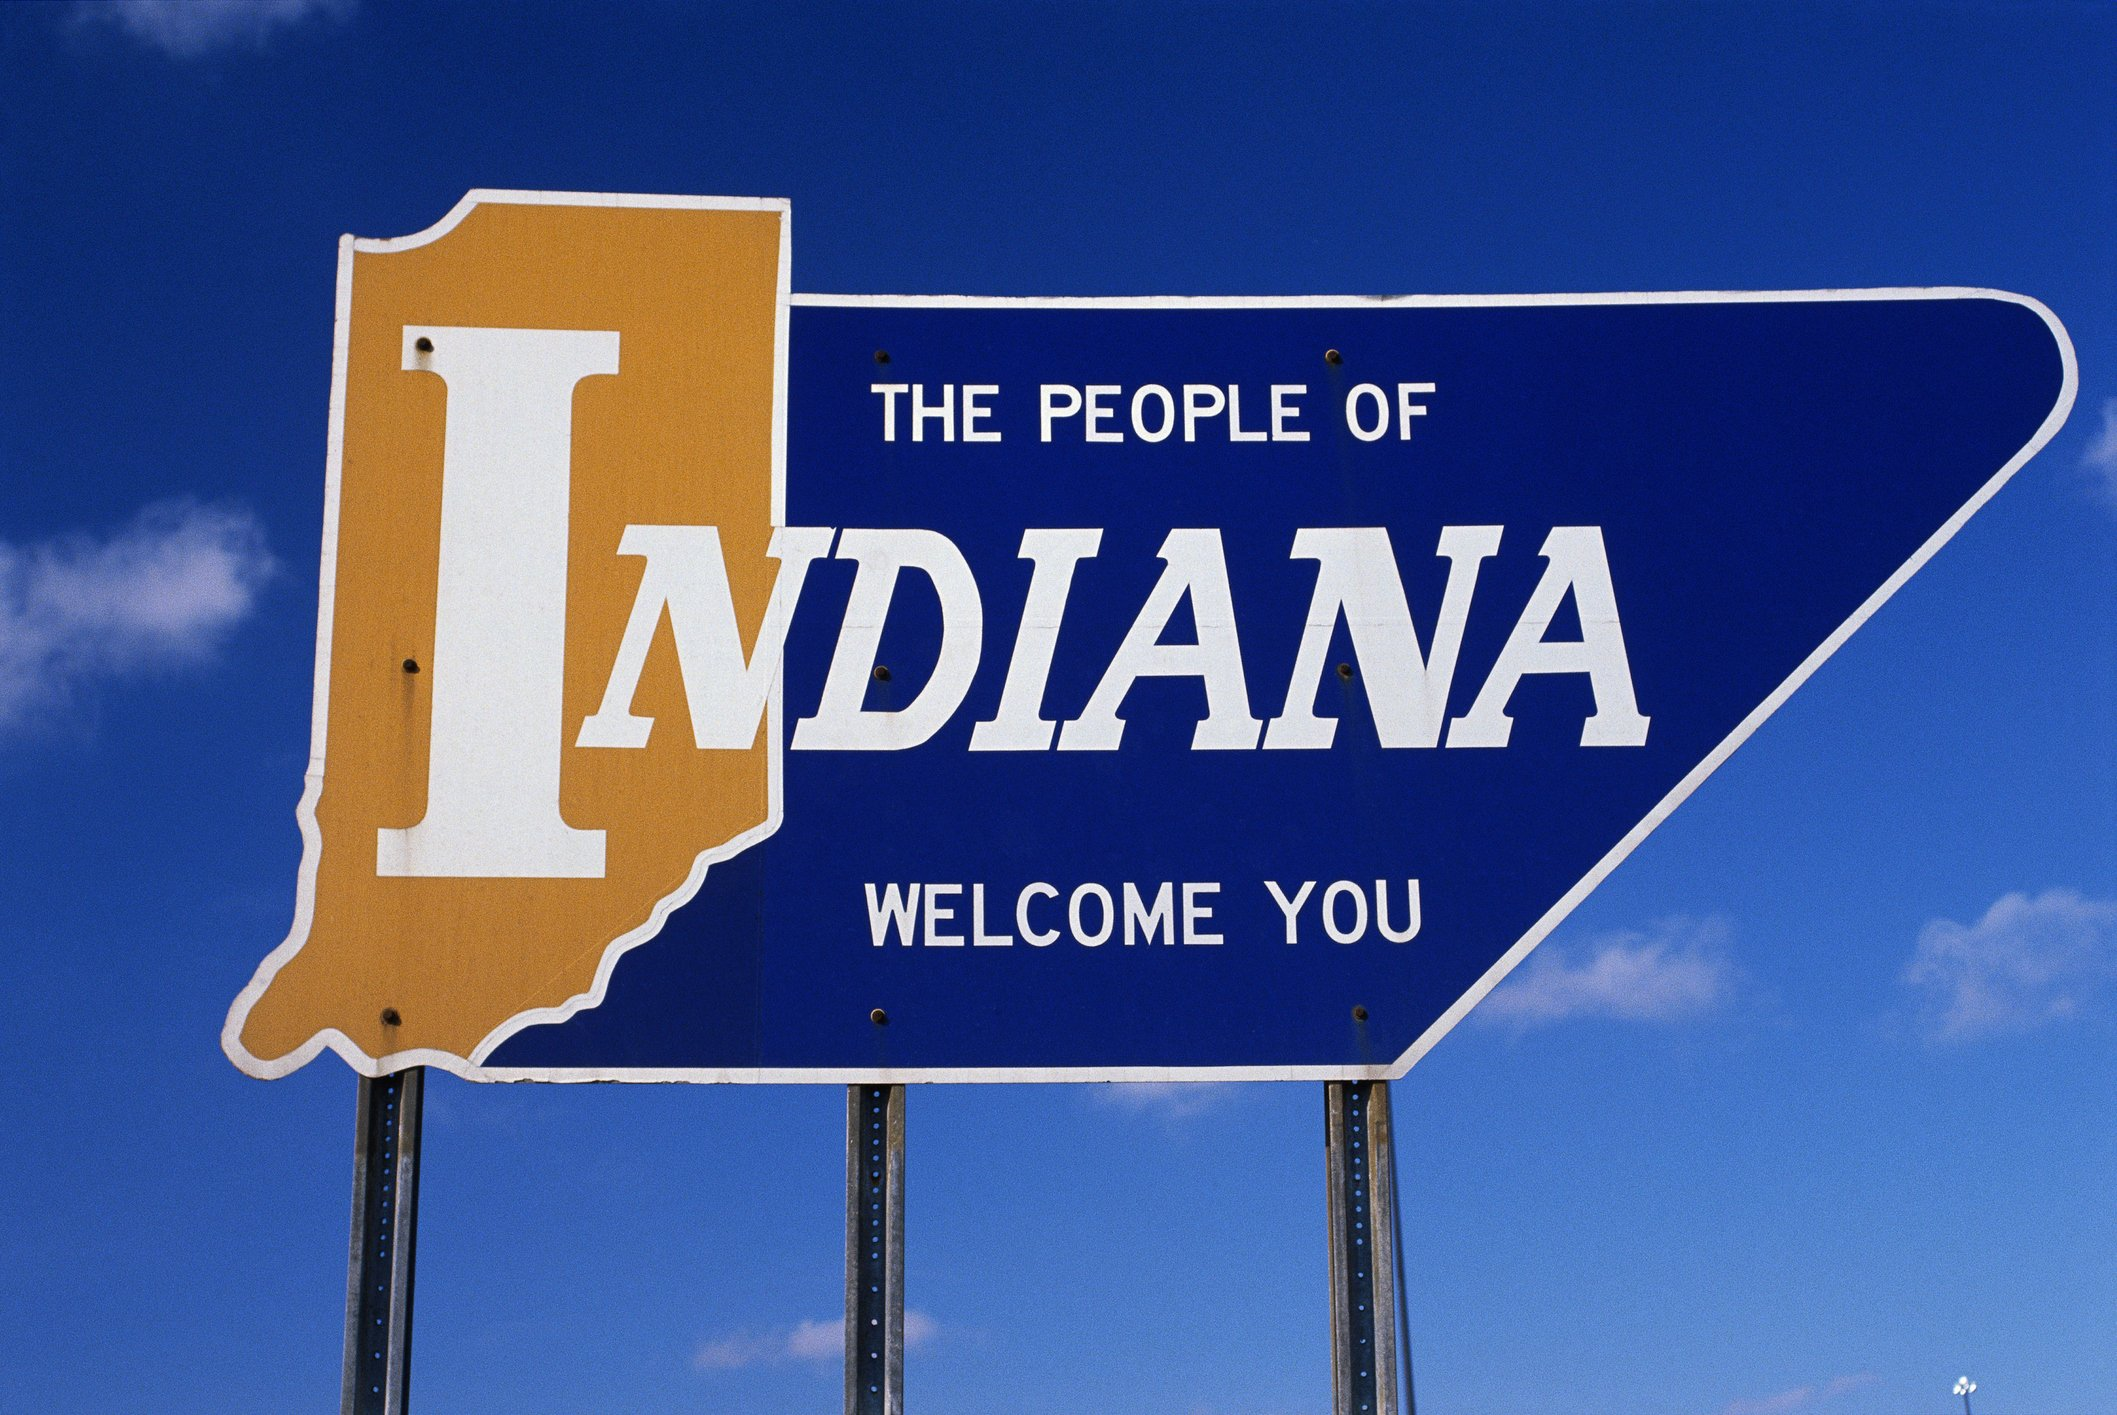 Slide 15 of 51: The people of Indiana are called Hoosiers, and the state is even referred to as the Hoosier state, but no one truly knows what Hoosier means. Check out these state facts that everyone gets wrong.